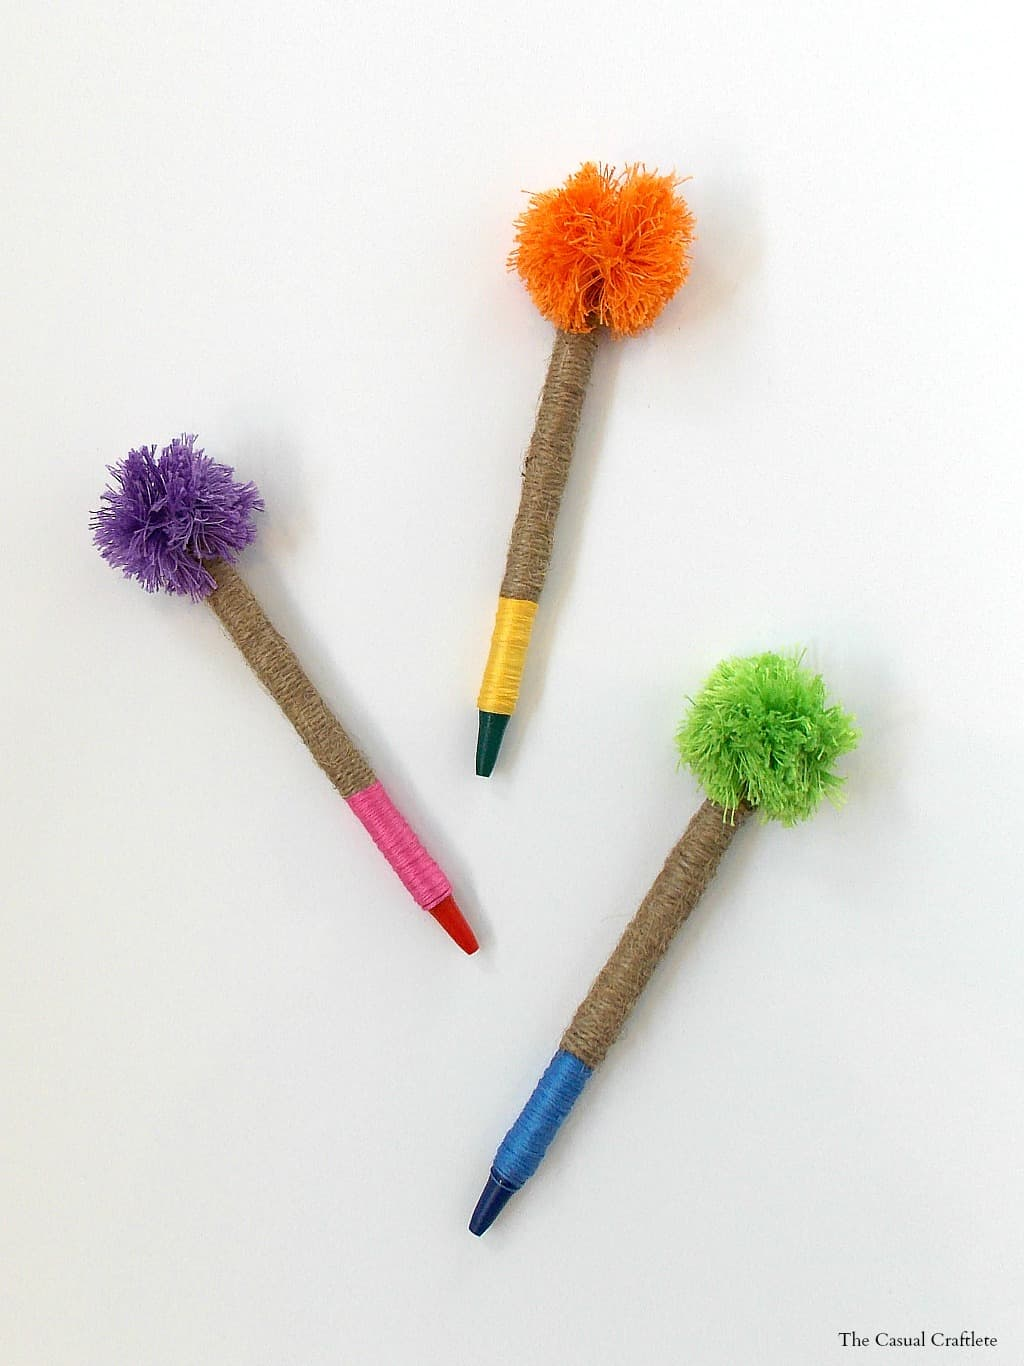 Anthropologie Knockoff Pom-Pom Pencils